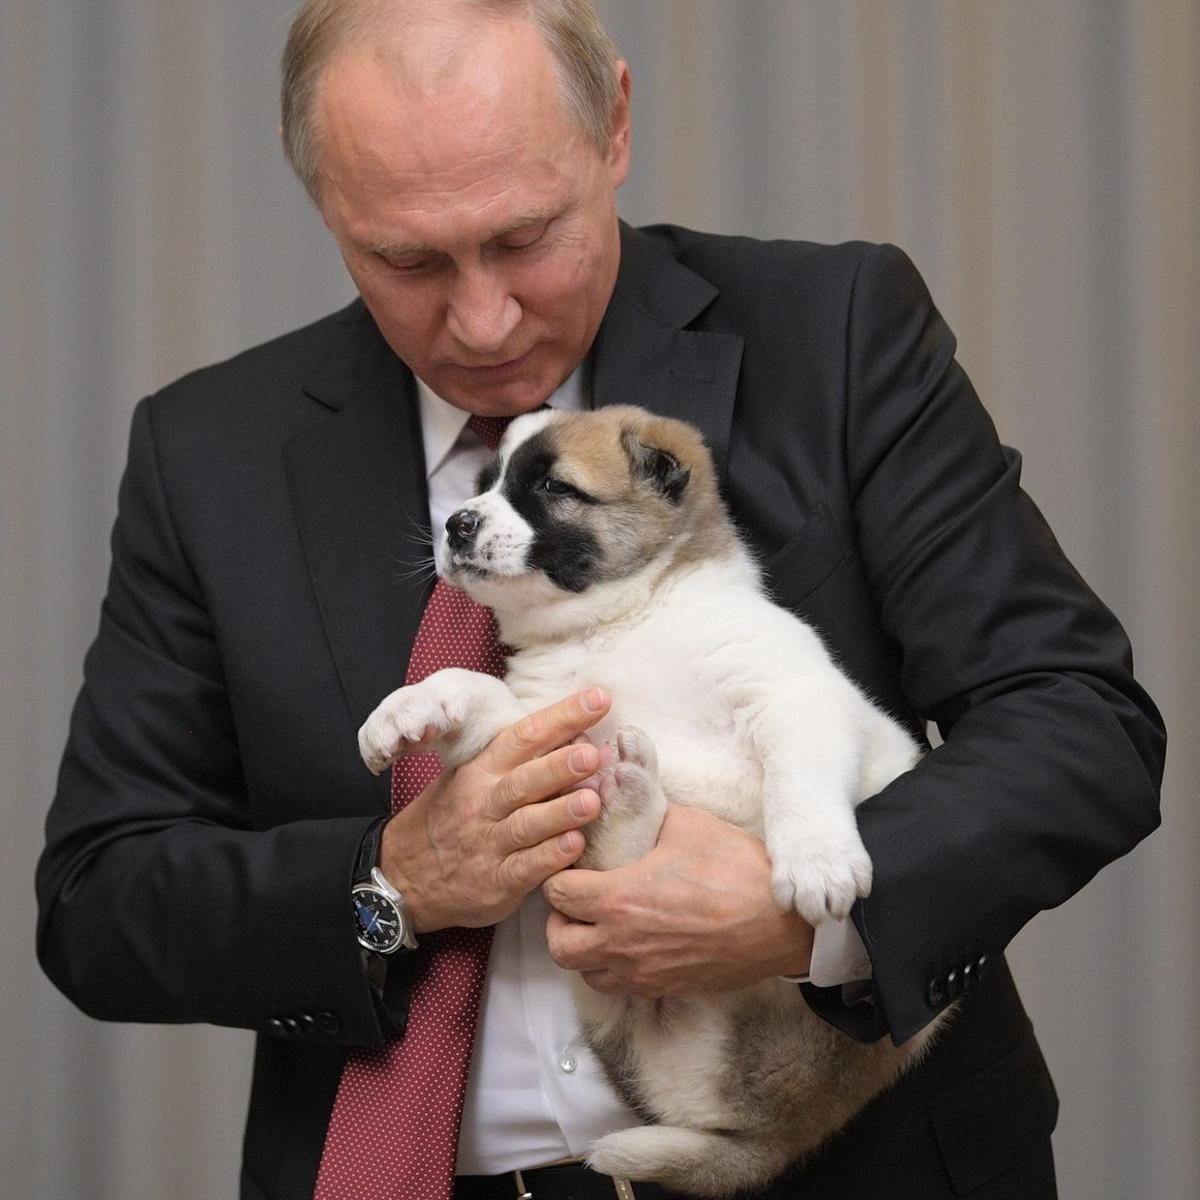 Russia S Dog Loving Leader Gets Another Puppy As Gift World Qconline Com